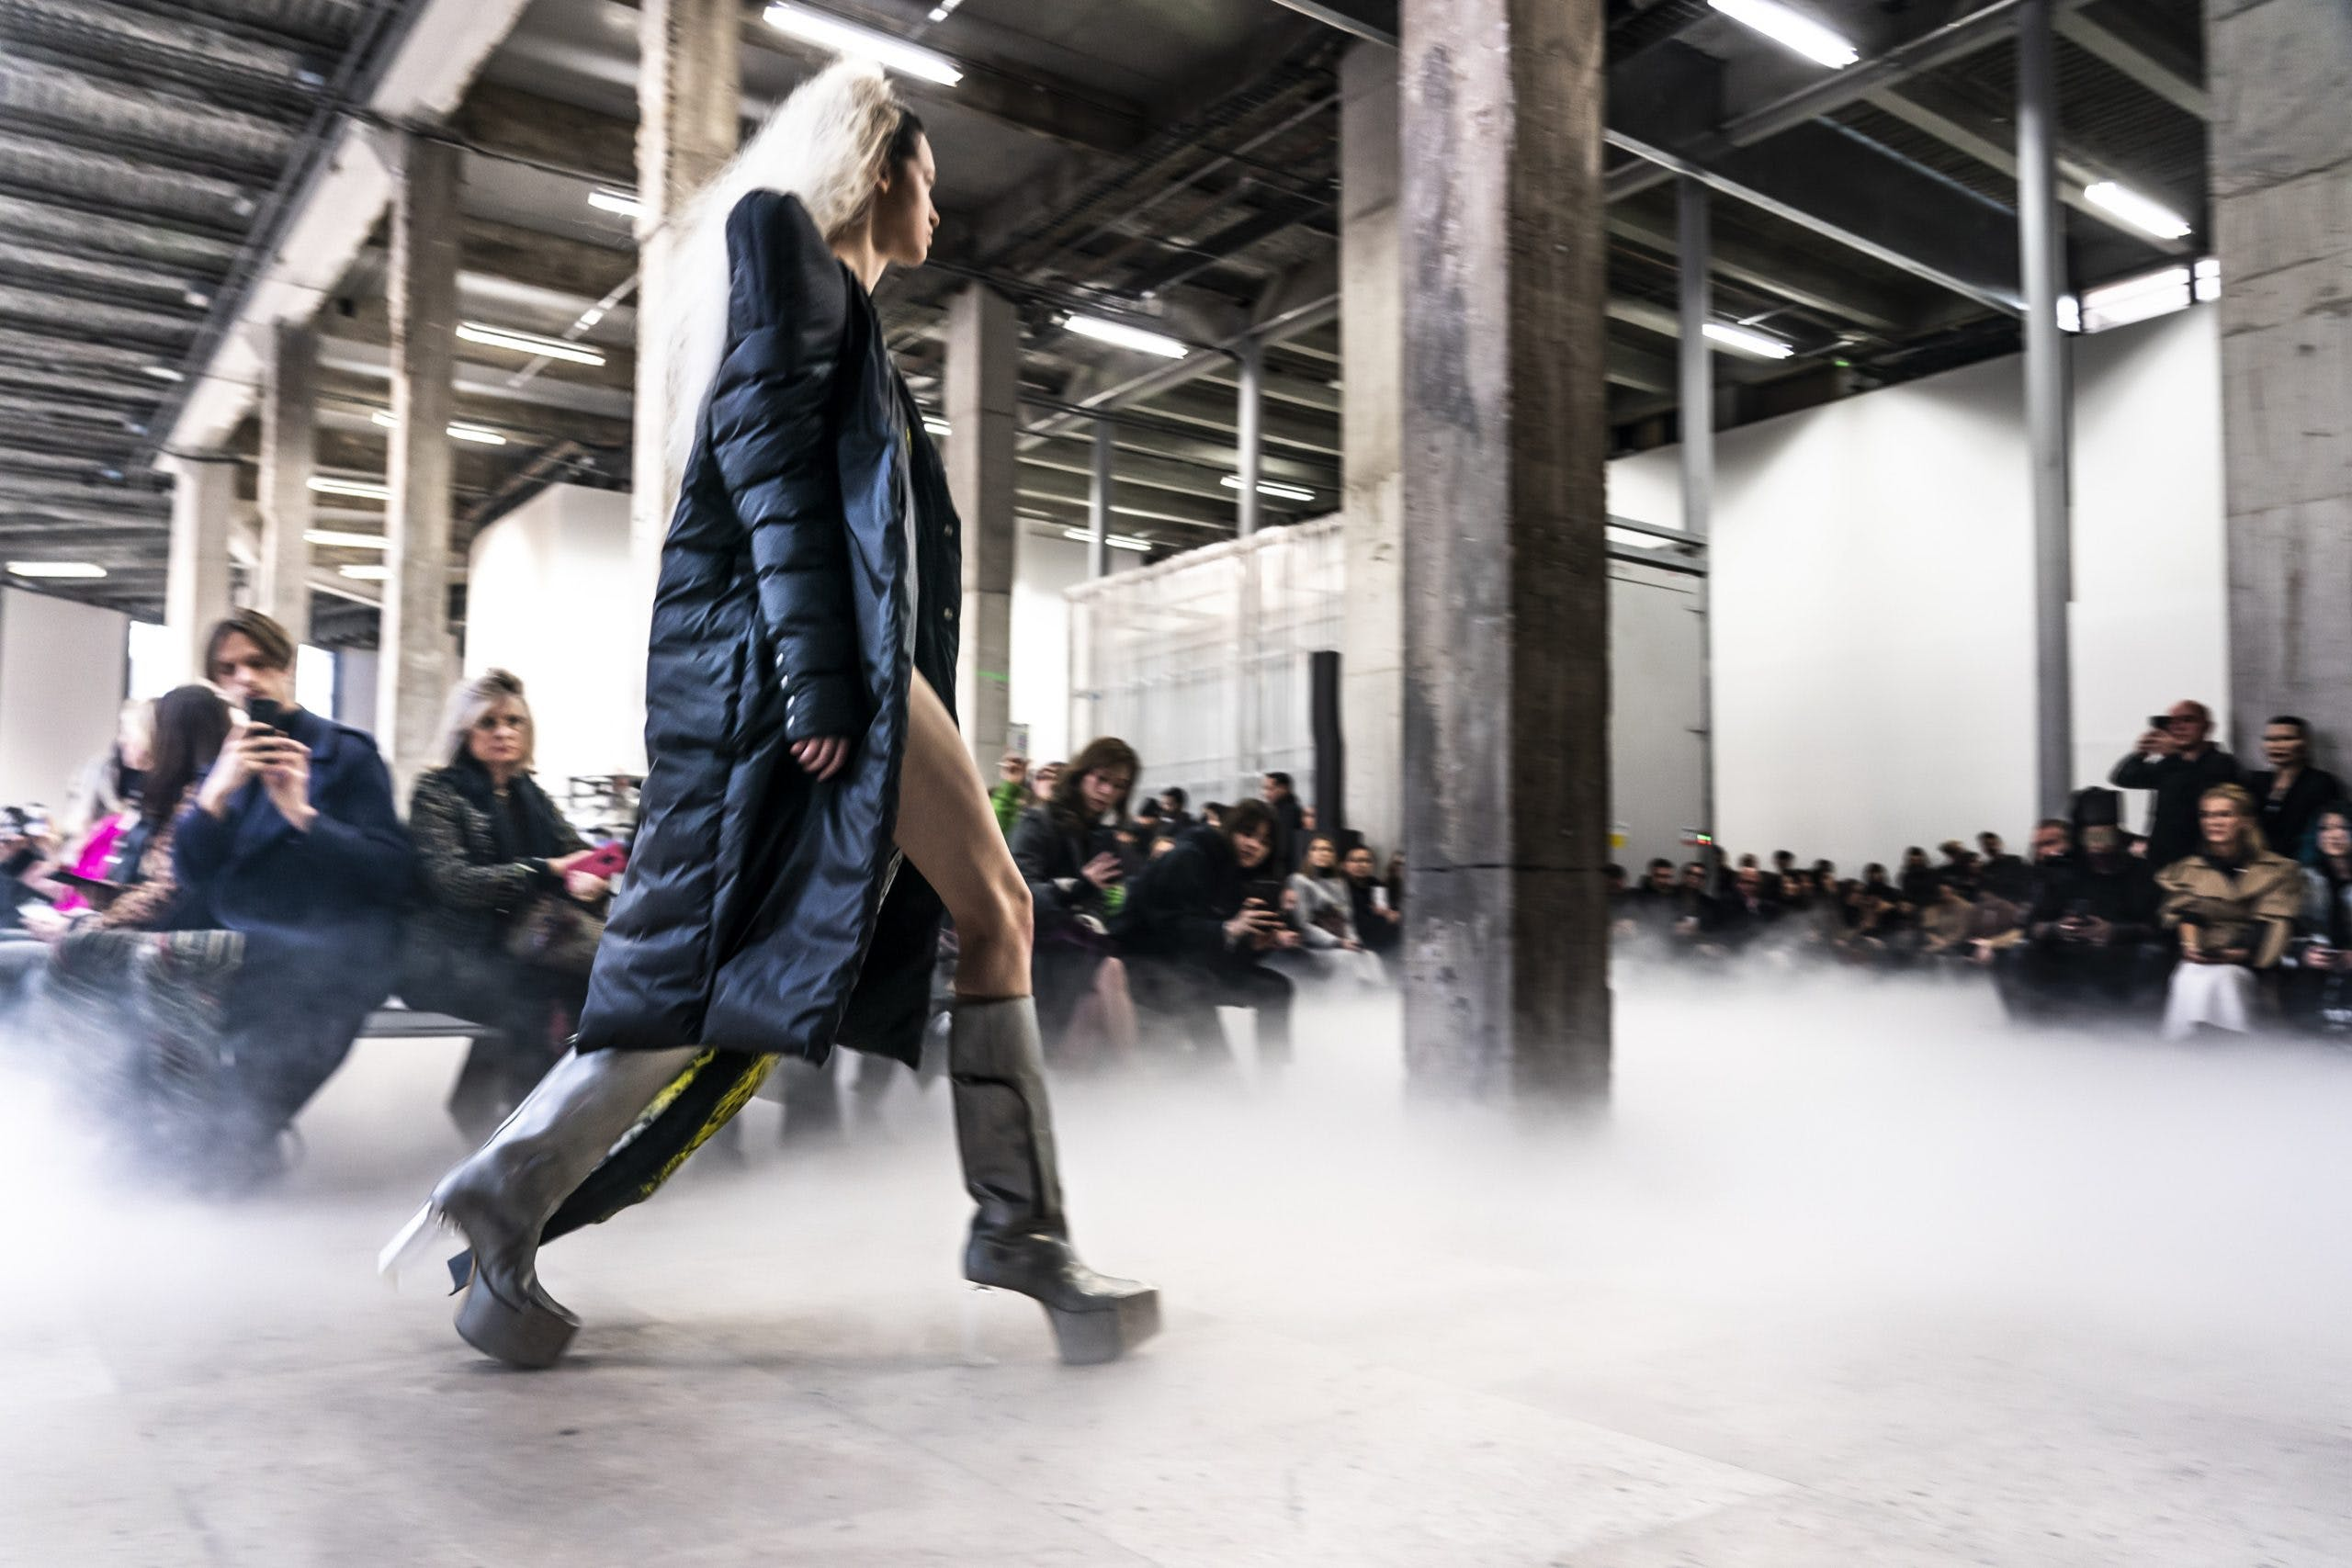 Rick Owens Runway Sharp Shoulder Padded Coat Hight Kiss Grill Boots in Grey Leather Womens FW20 Performa